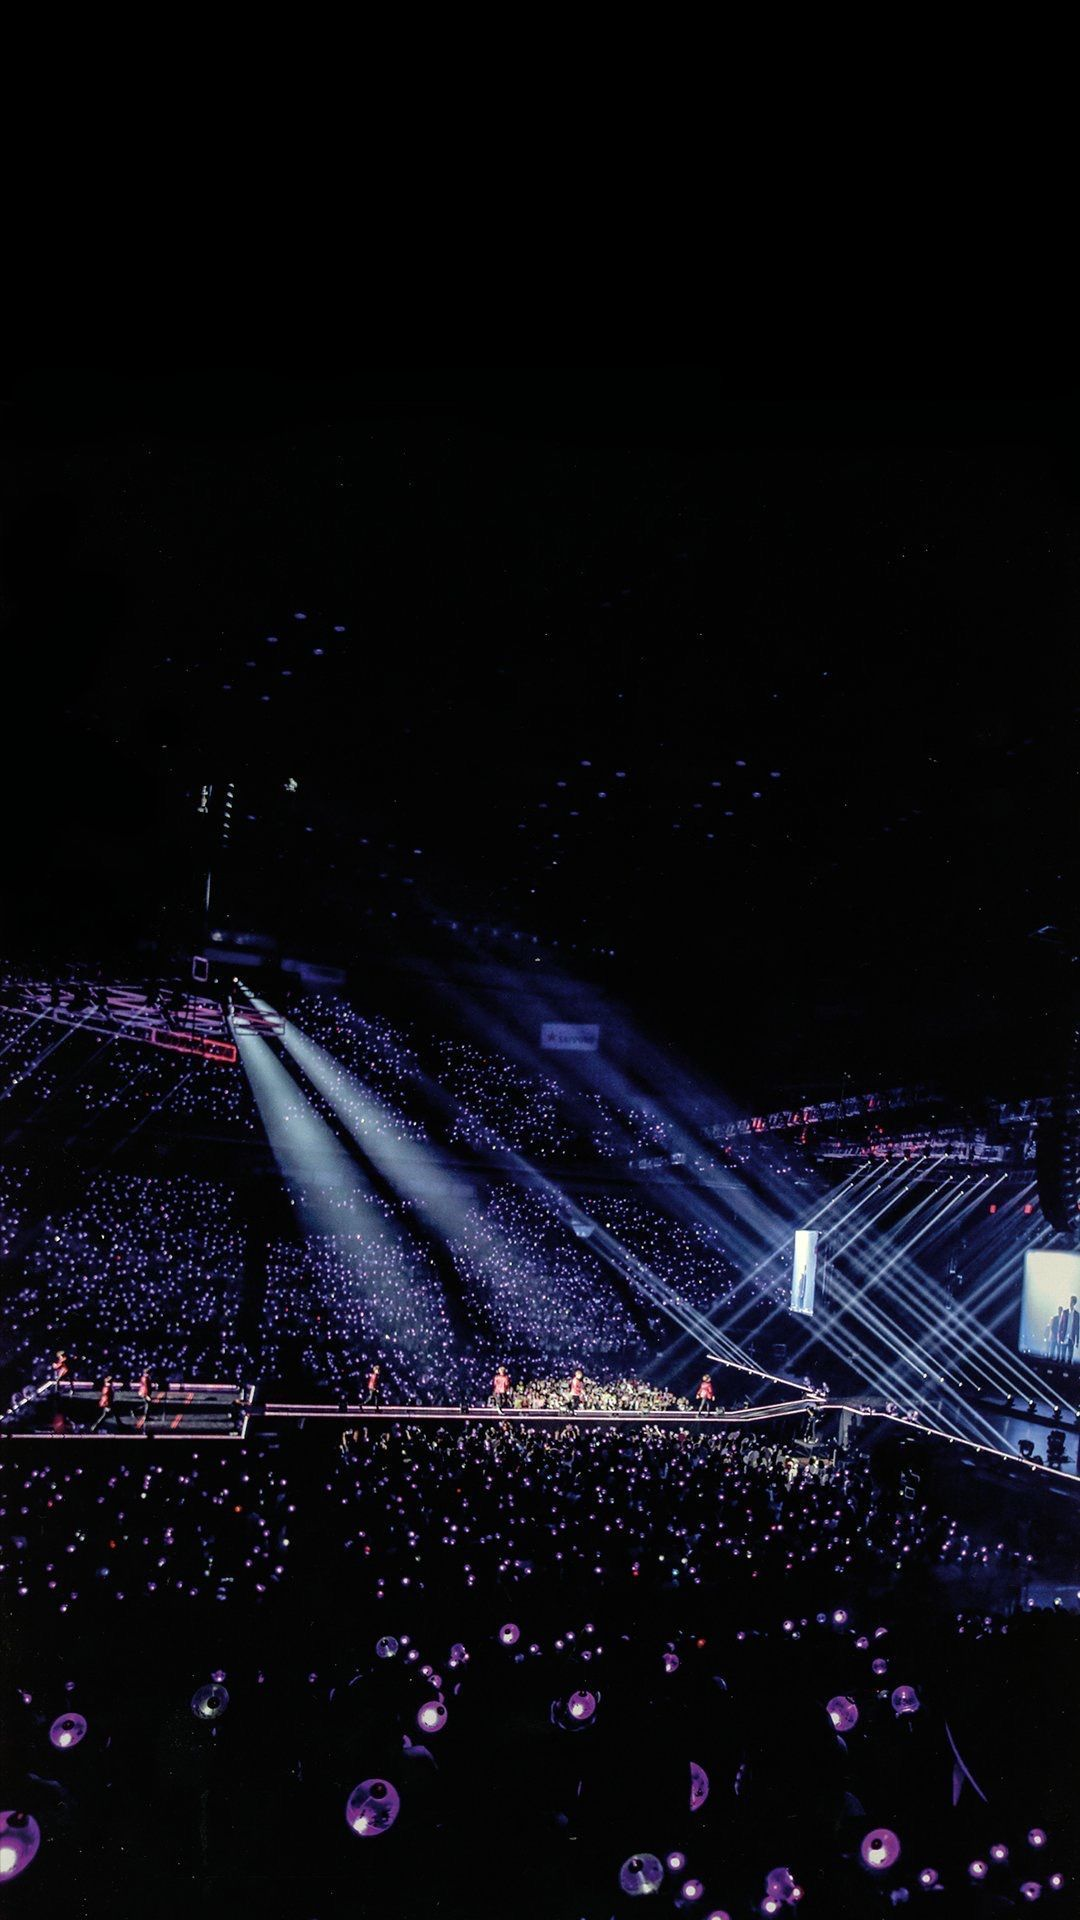 Bts Concert Wallpapers Bts Concert Wallpapers Informations About Bts Concert Wallpapers Pin You Can Easily Use My Pro In 2020 Bts Concert Bts Army Bomb Bts Wallpaper